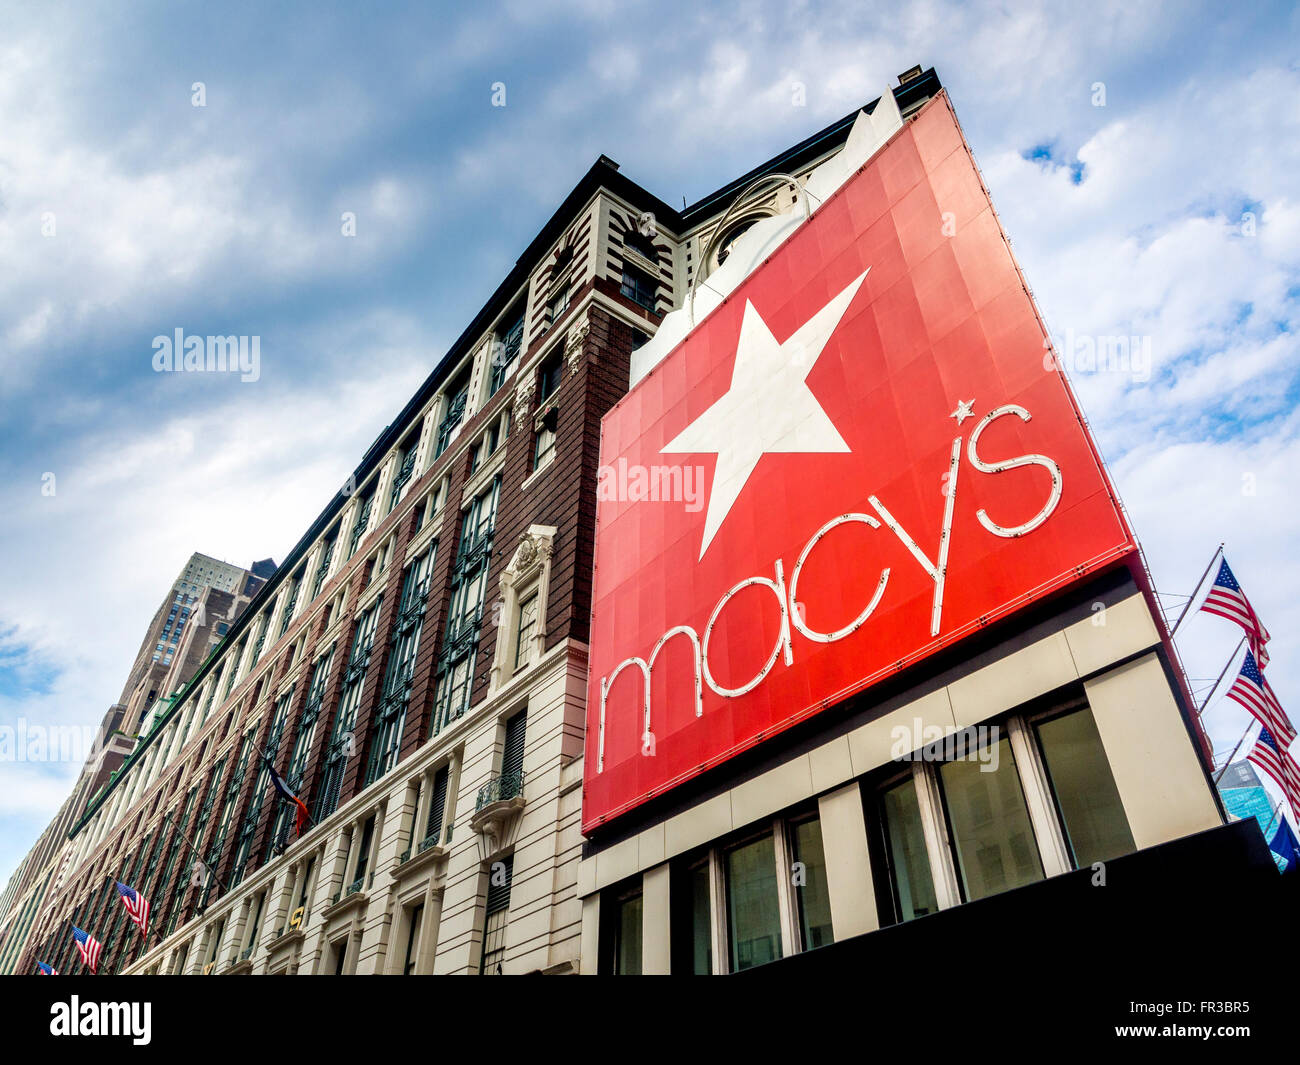 Macy's Department Store, New York City, USA. - Stock Image